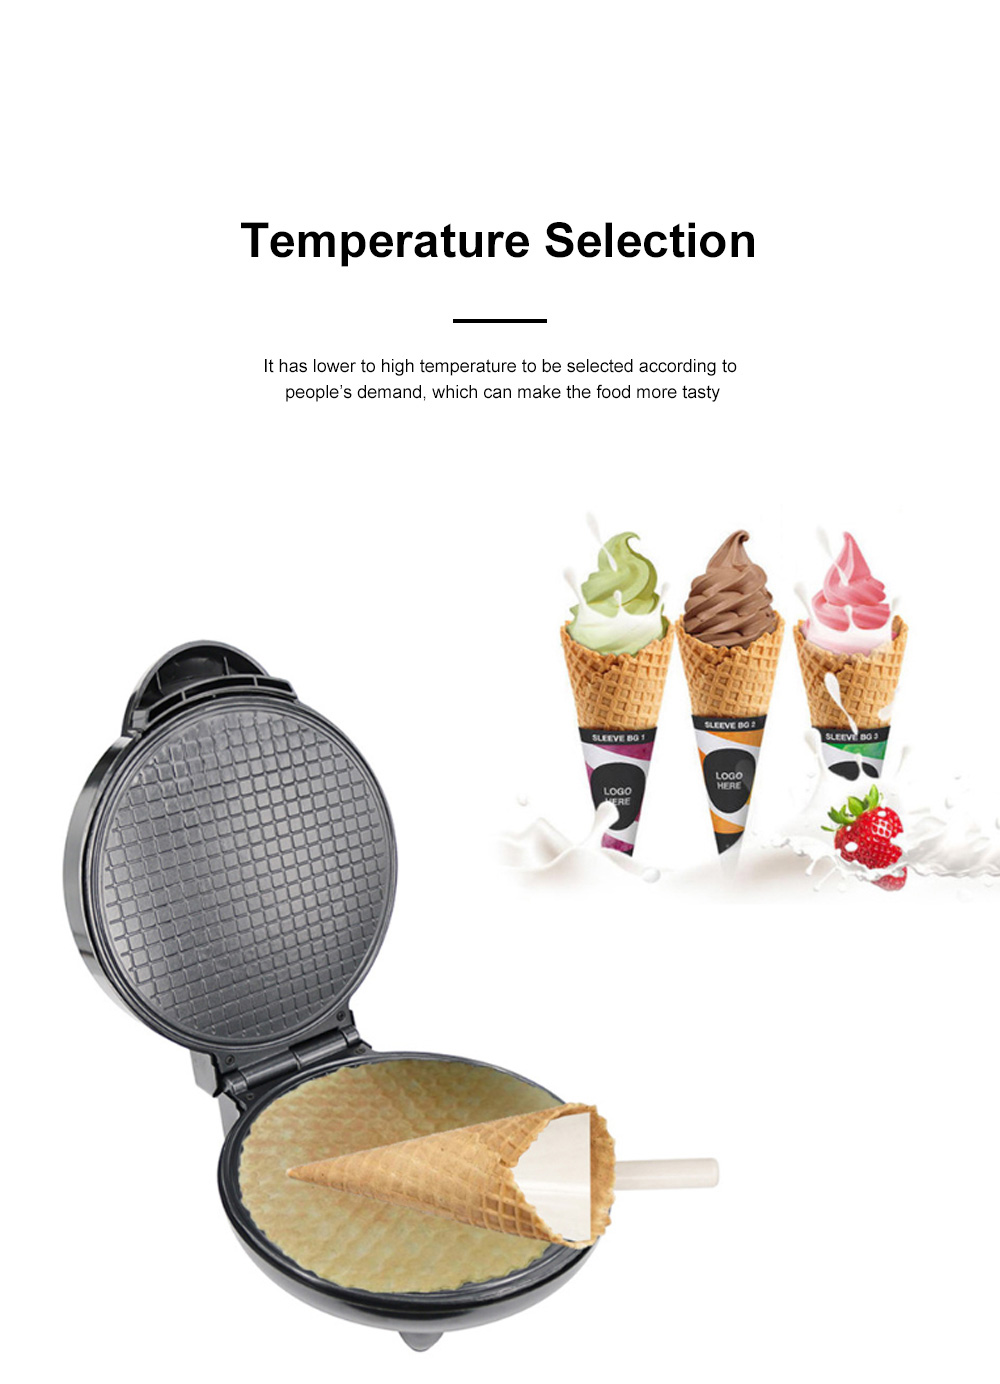 European-style Cone Crispy Egg Roll Machine Multifunctional Professional Round Ice Cream Waffle Cone Maker 3